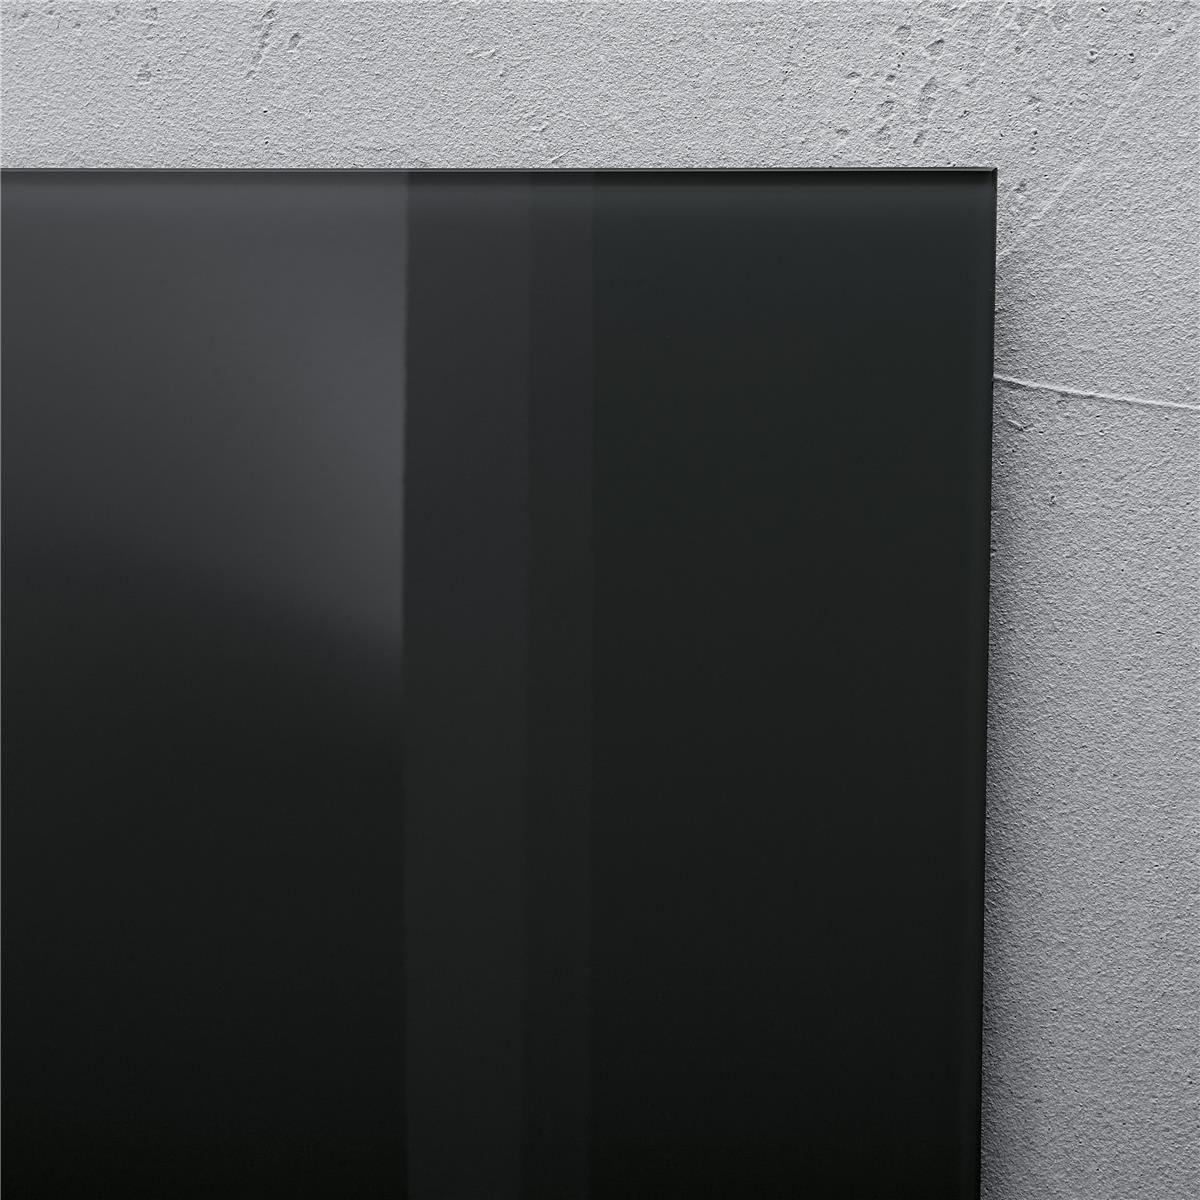 Sigel Artverum High Quality Tempered Glass Magnetic Board With Fixings 910x460mm Black GL145